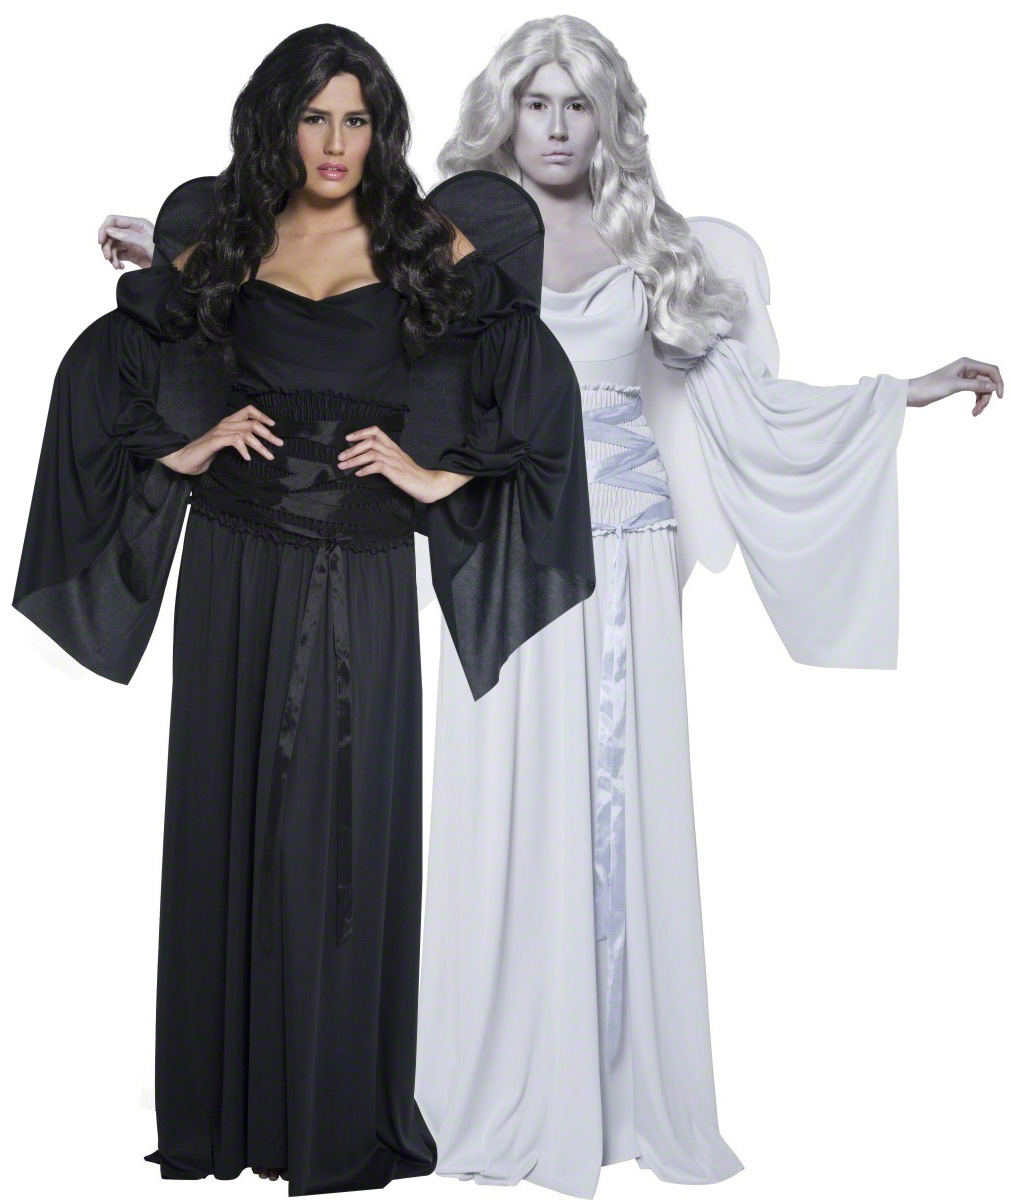 D guisement couple anges halloween - Deguisement couple halloween ...